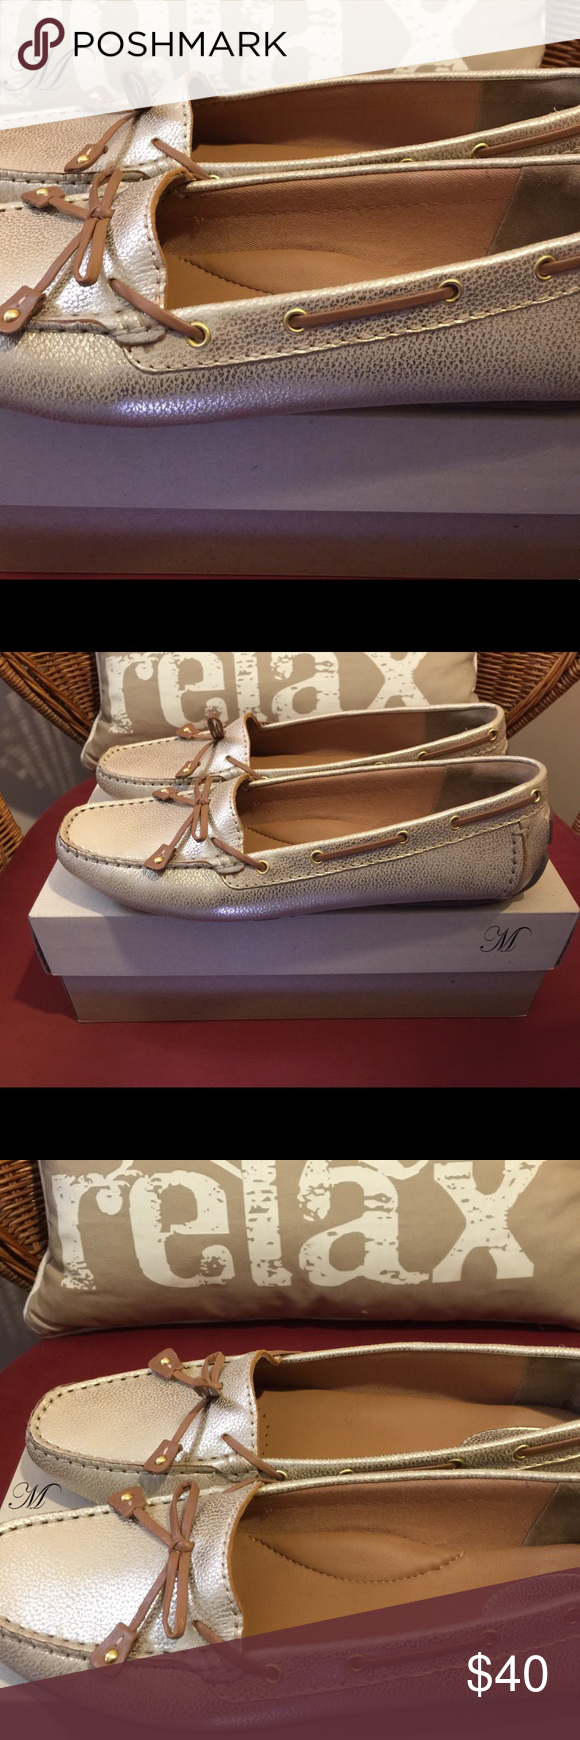 Clarks Gold Dunbar Racer Moccasin These gold leather Clarks moccasins have never been worn. Because of the color, they will match just about any casual outfit. Clarks Shoes Moccasins